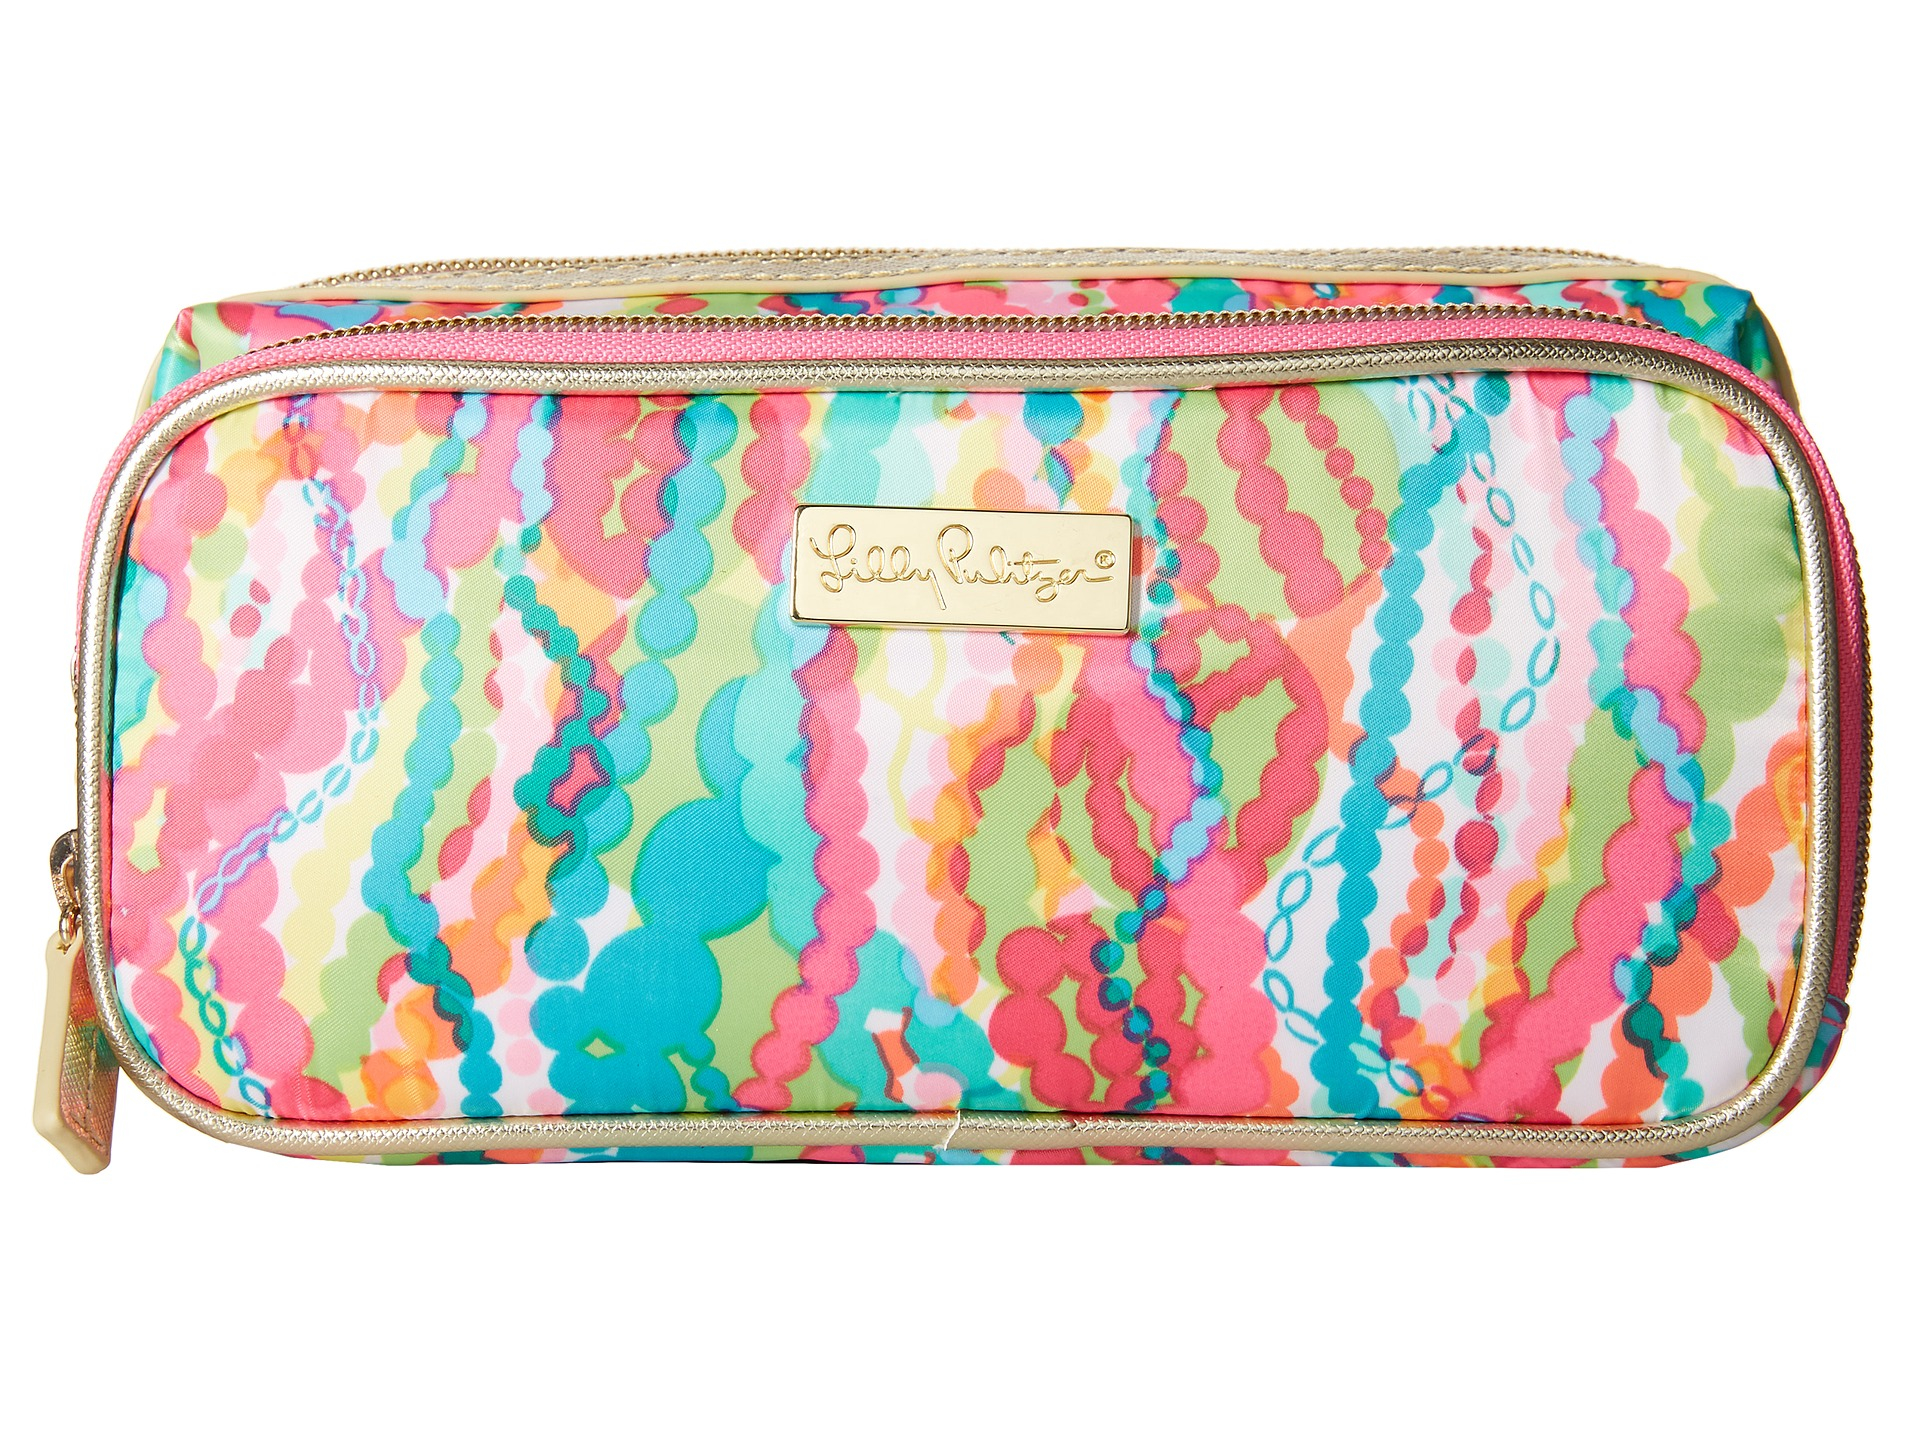 79c988c82be0 Lyst - Lilly Pulitzer Make It Cosmetic Case for Men